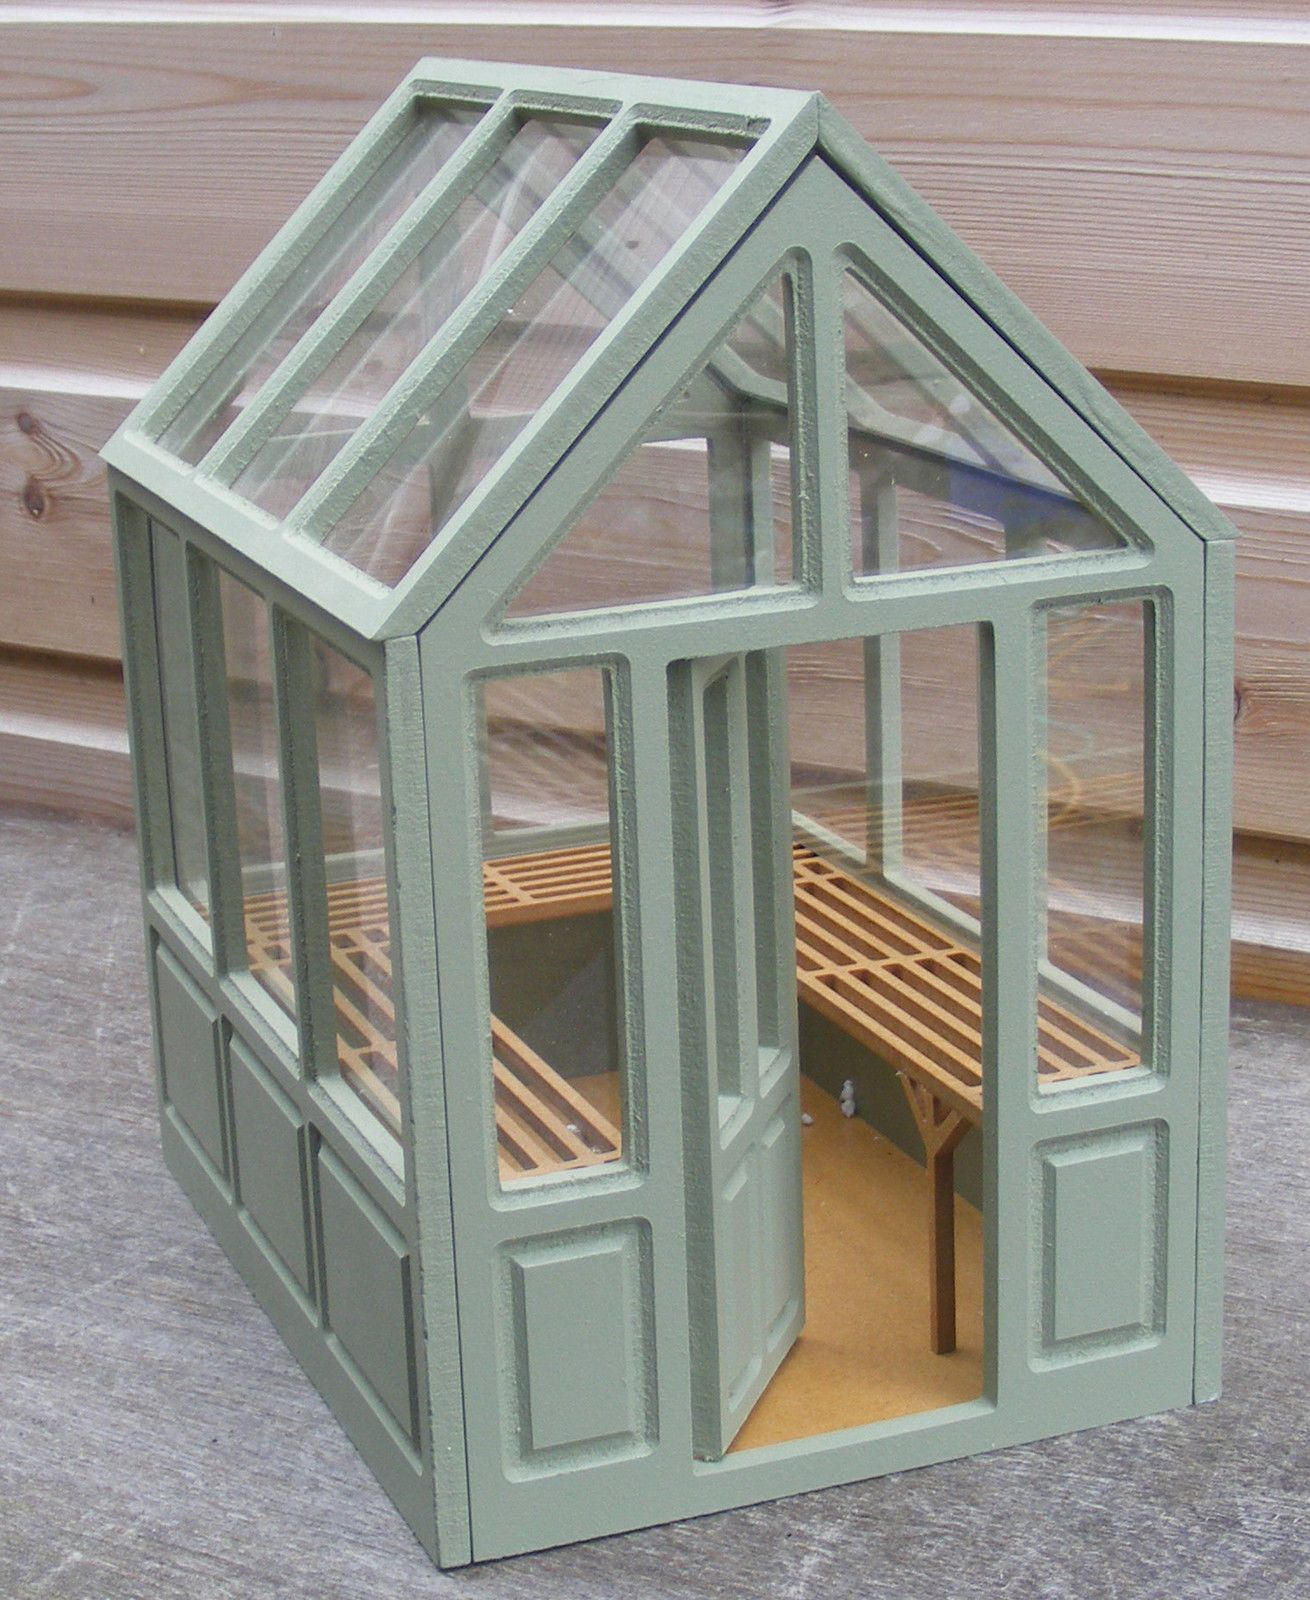 Diy Miniature Doll House Flat Packed Cardboard Kit Mini: 1 12 Scale Dolls House Miniature Flat Pack Unpainted